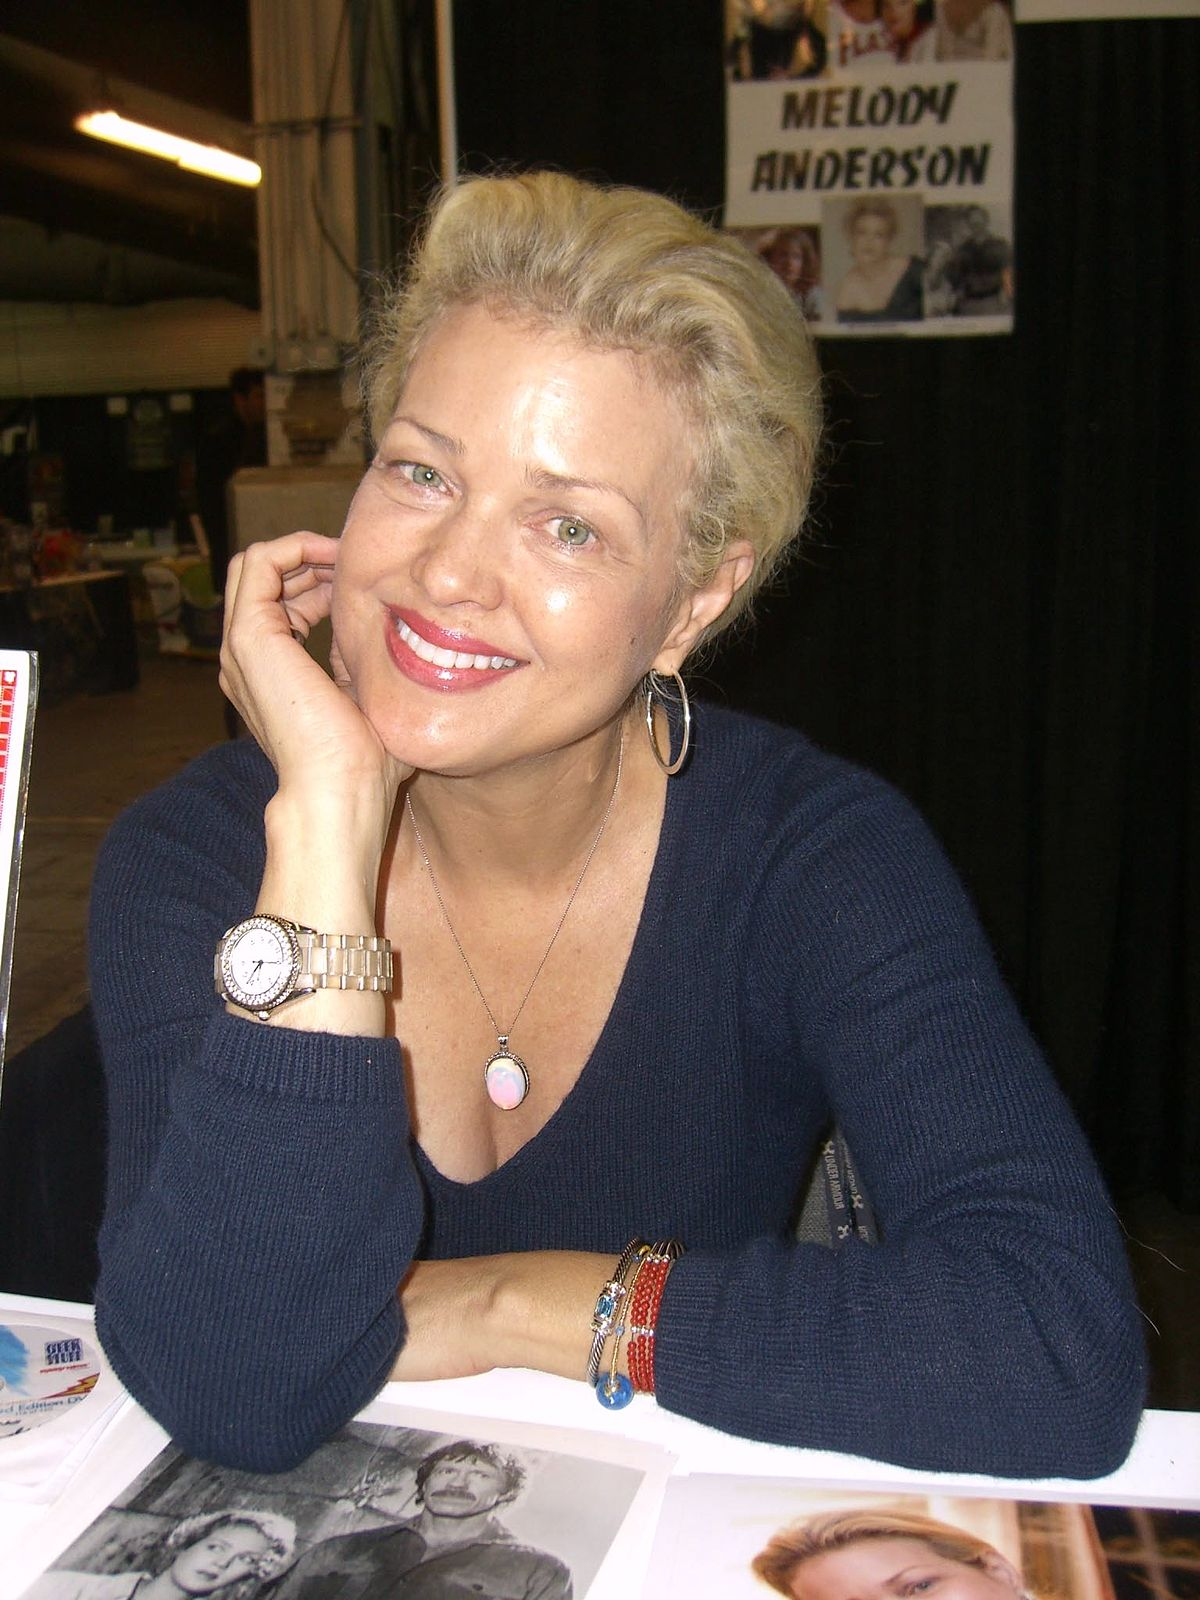 Melody Anderson born December 3, 1955 (age 62)